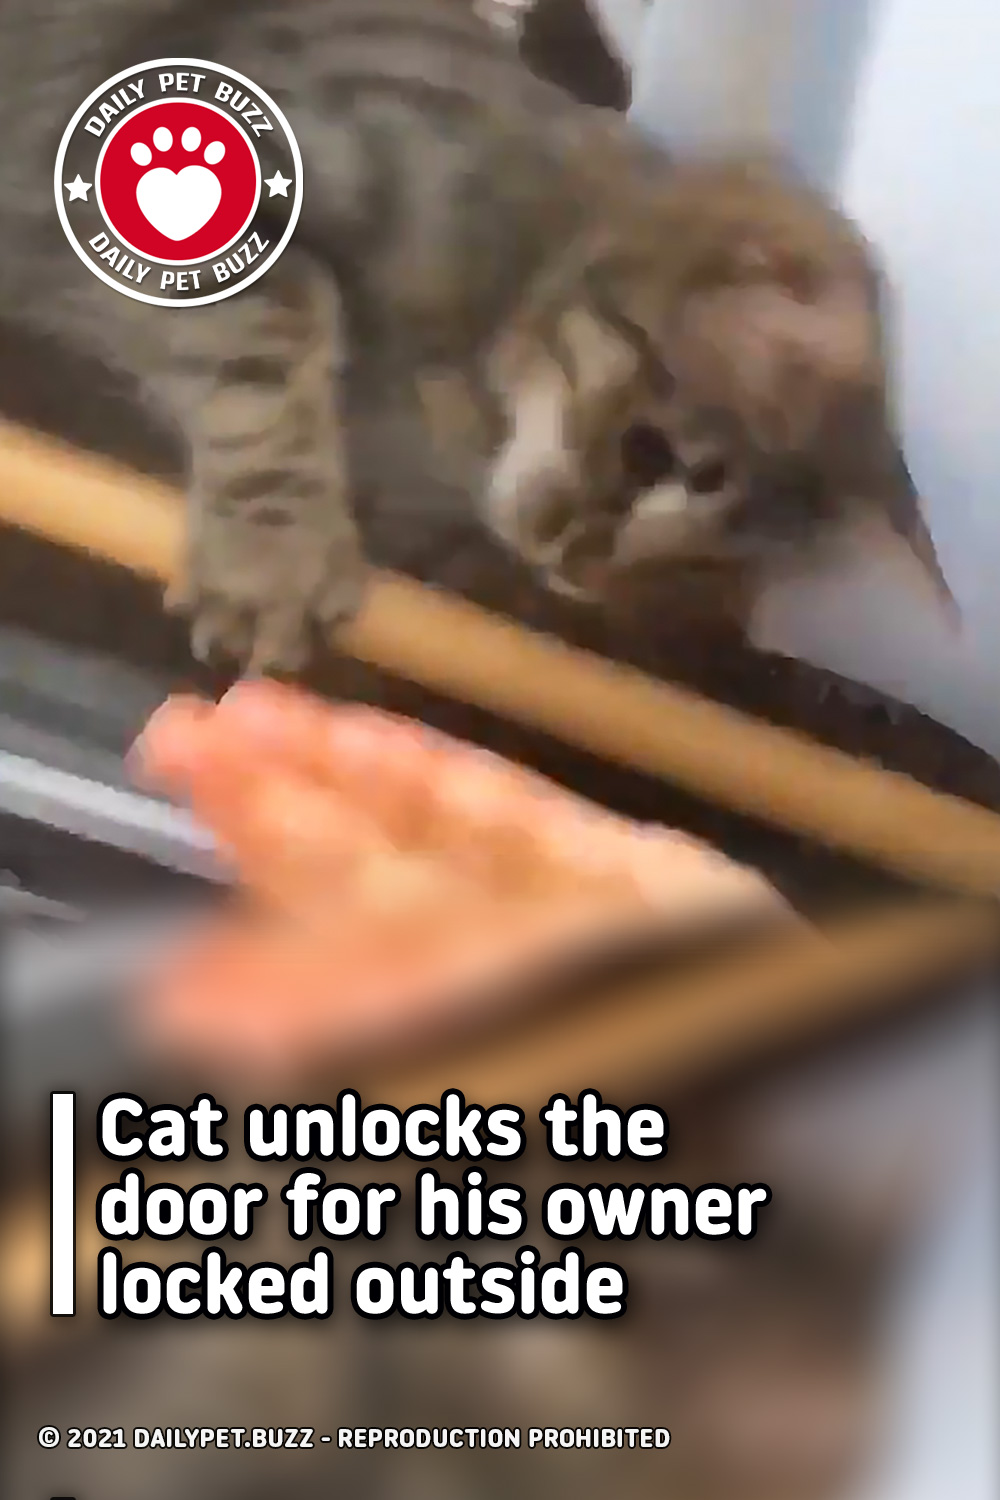 Cat unlocks the door for his owner locked outside